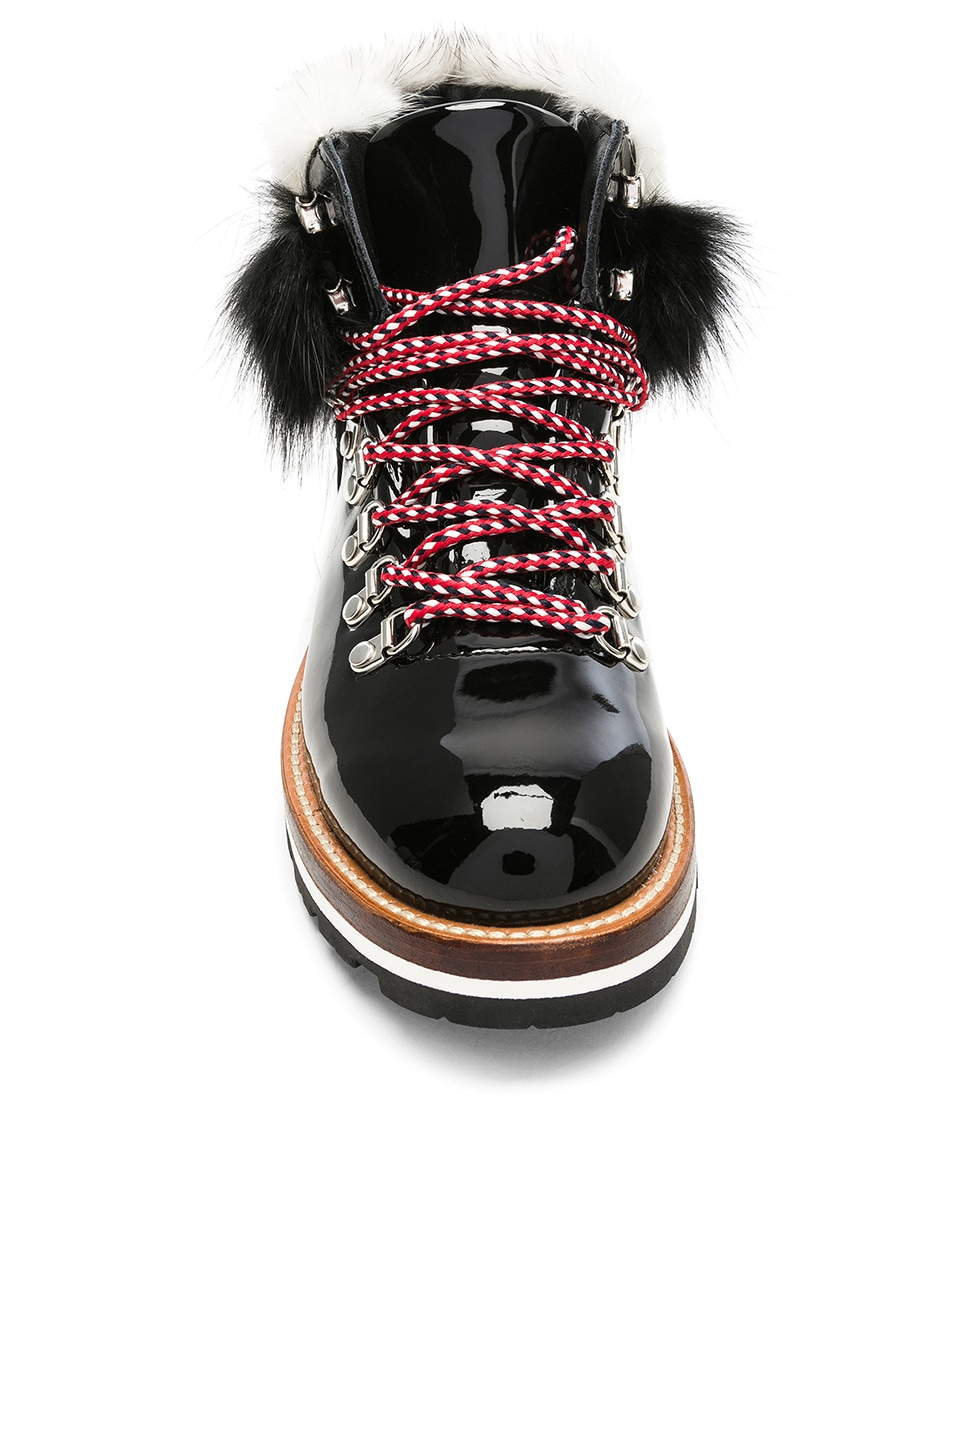 Image 4 of Moncler Patent Leather Solange Scarpa Boots With Mink Fur in Black